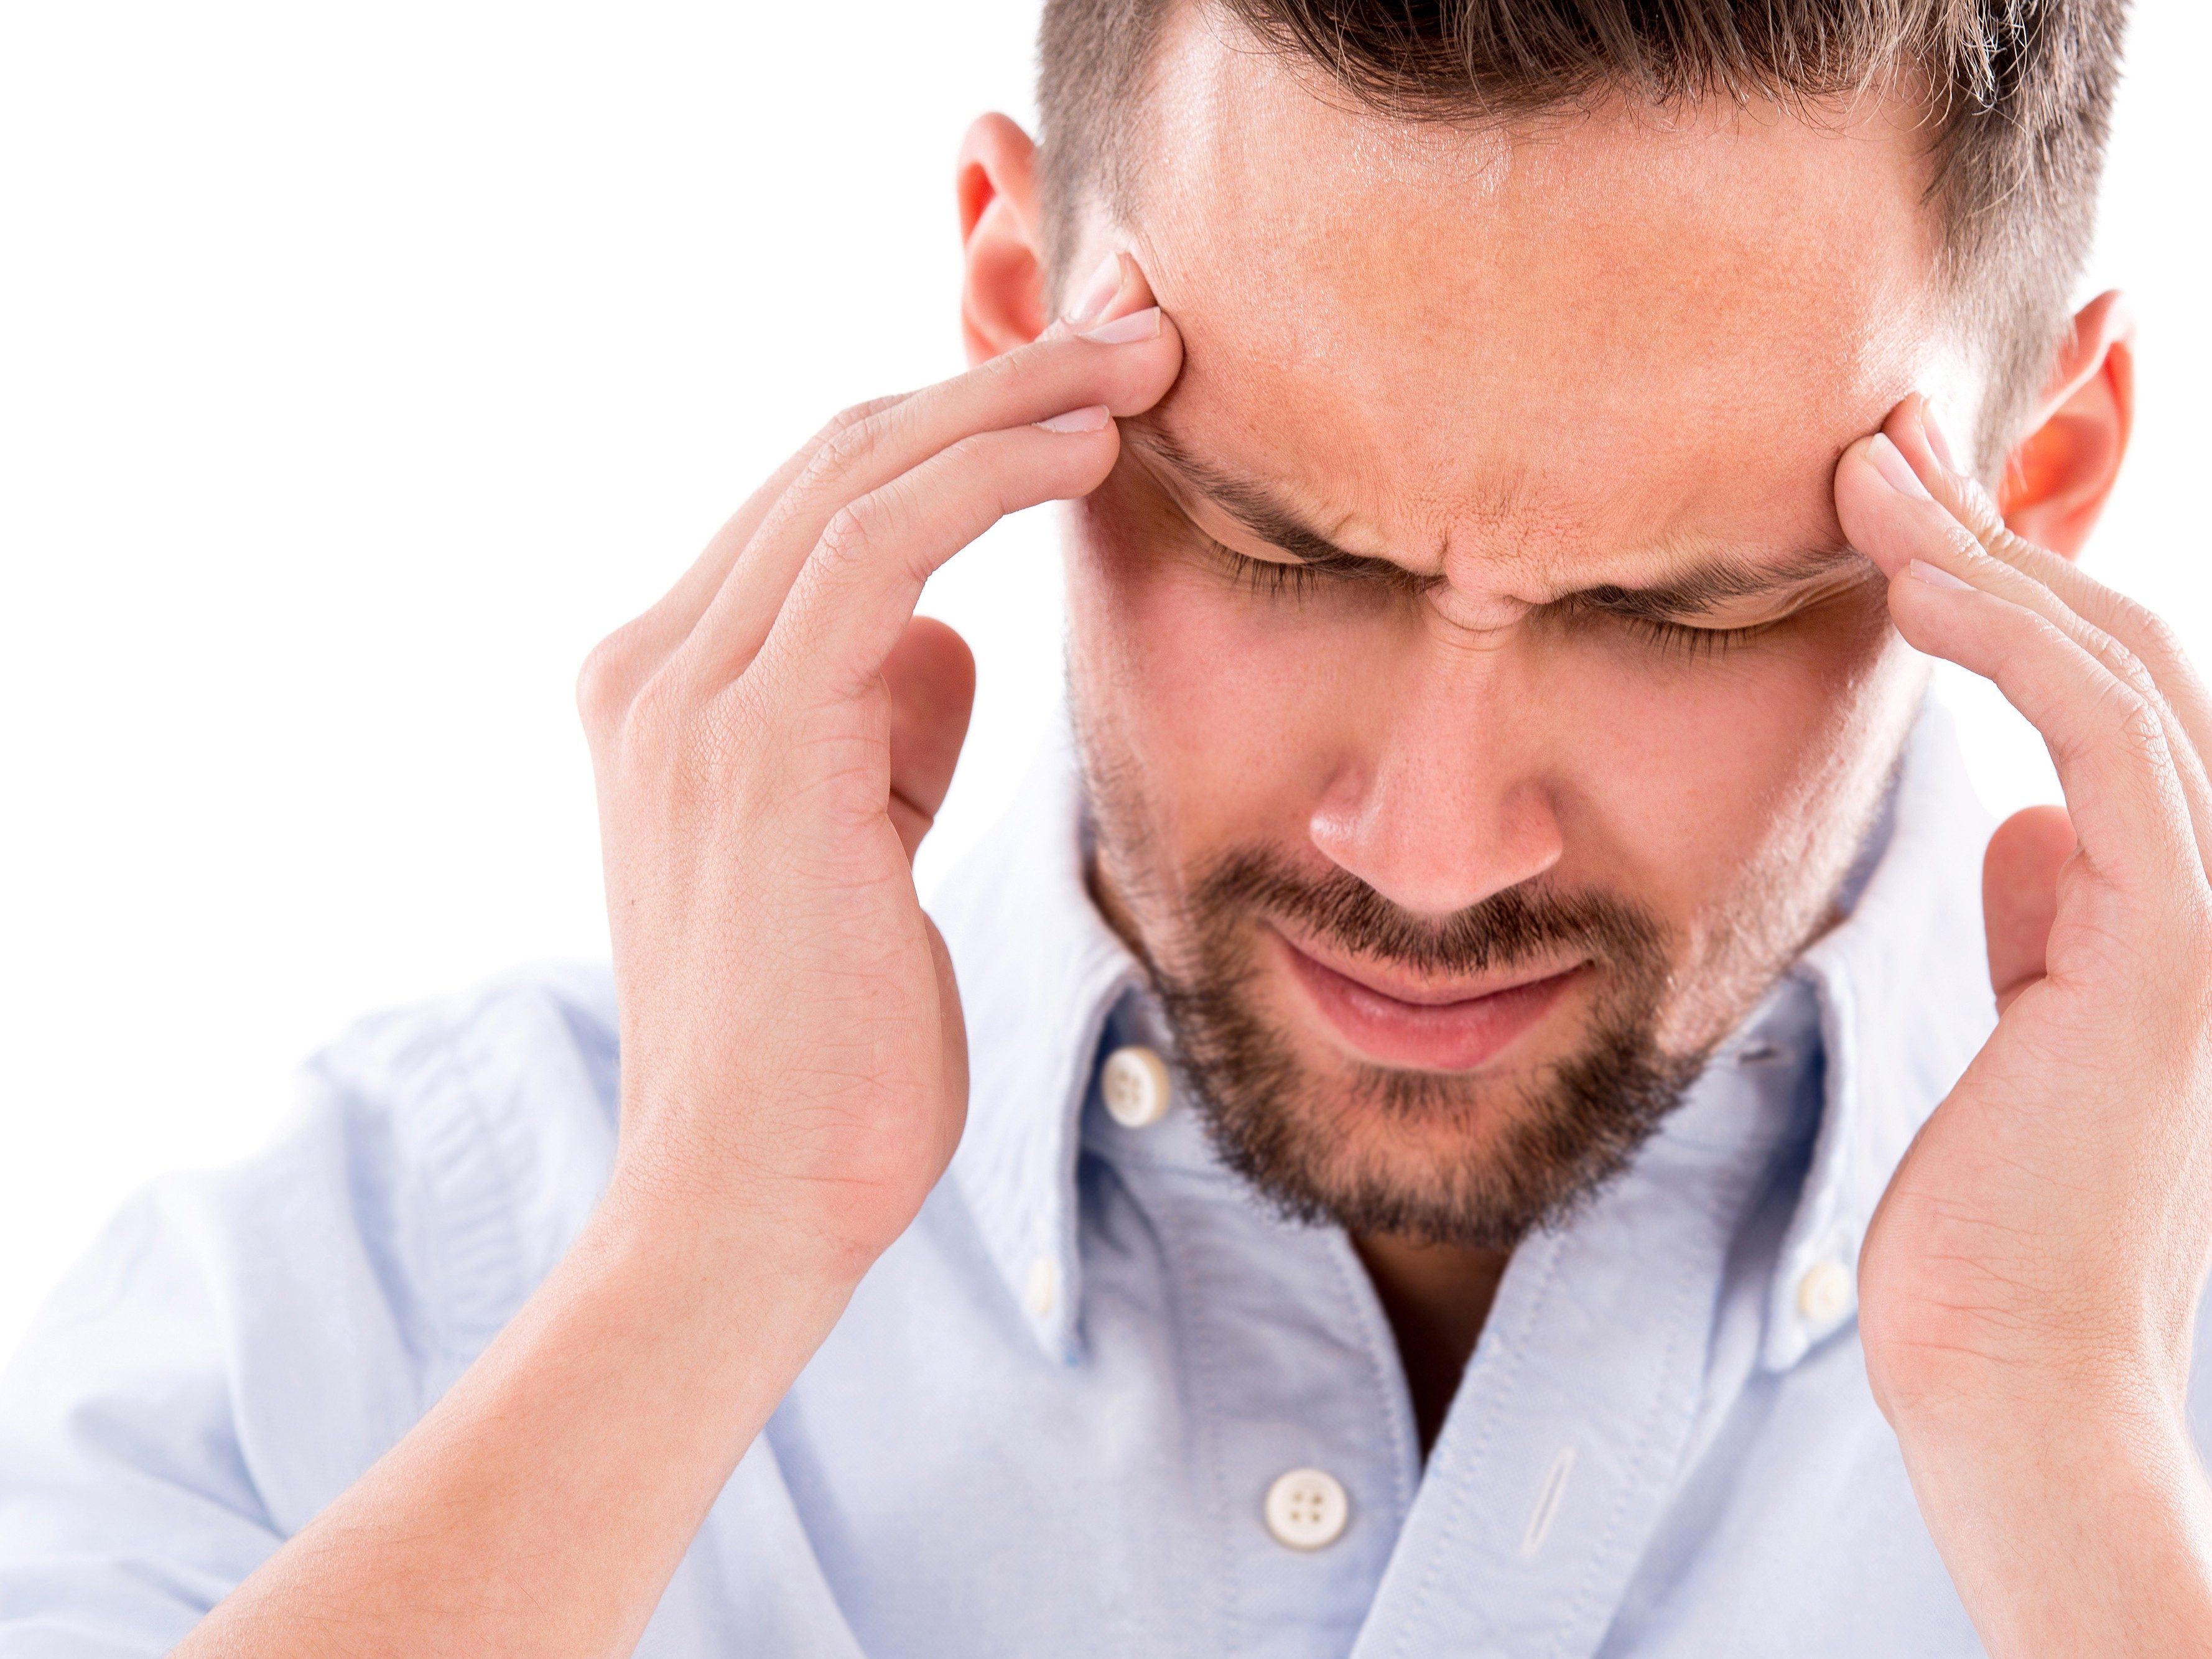 CTs or MRIs  for Headaches